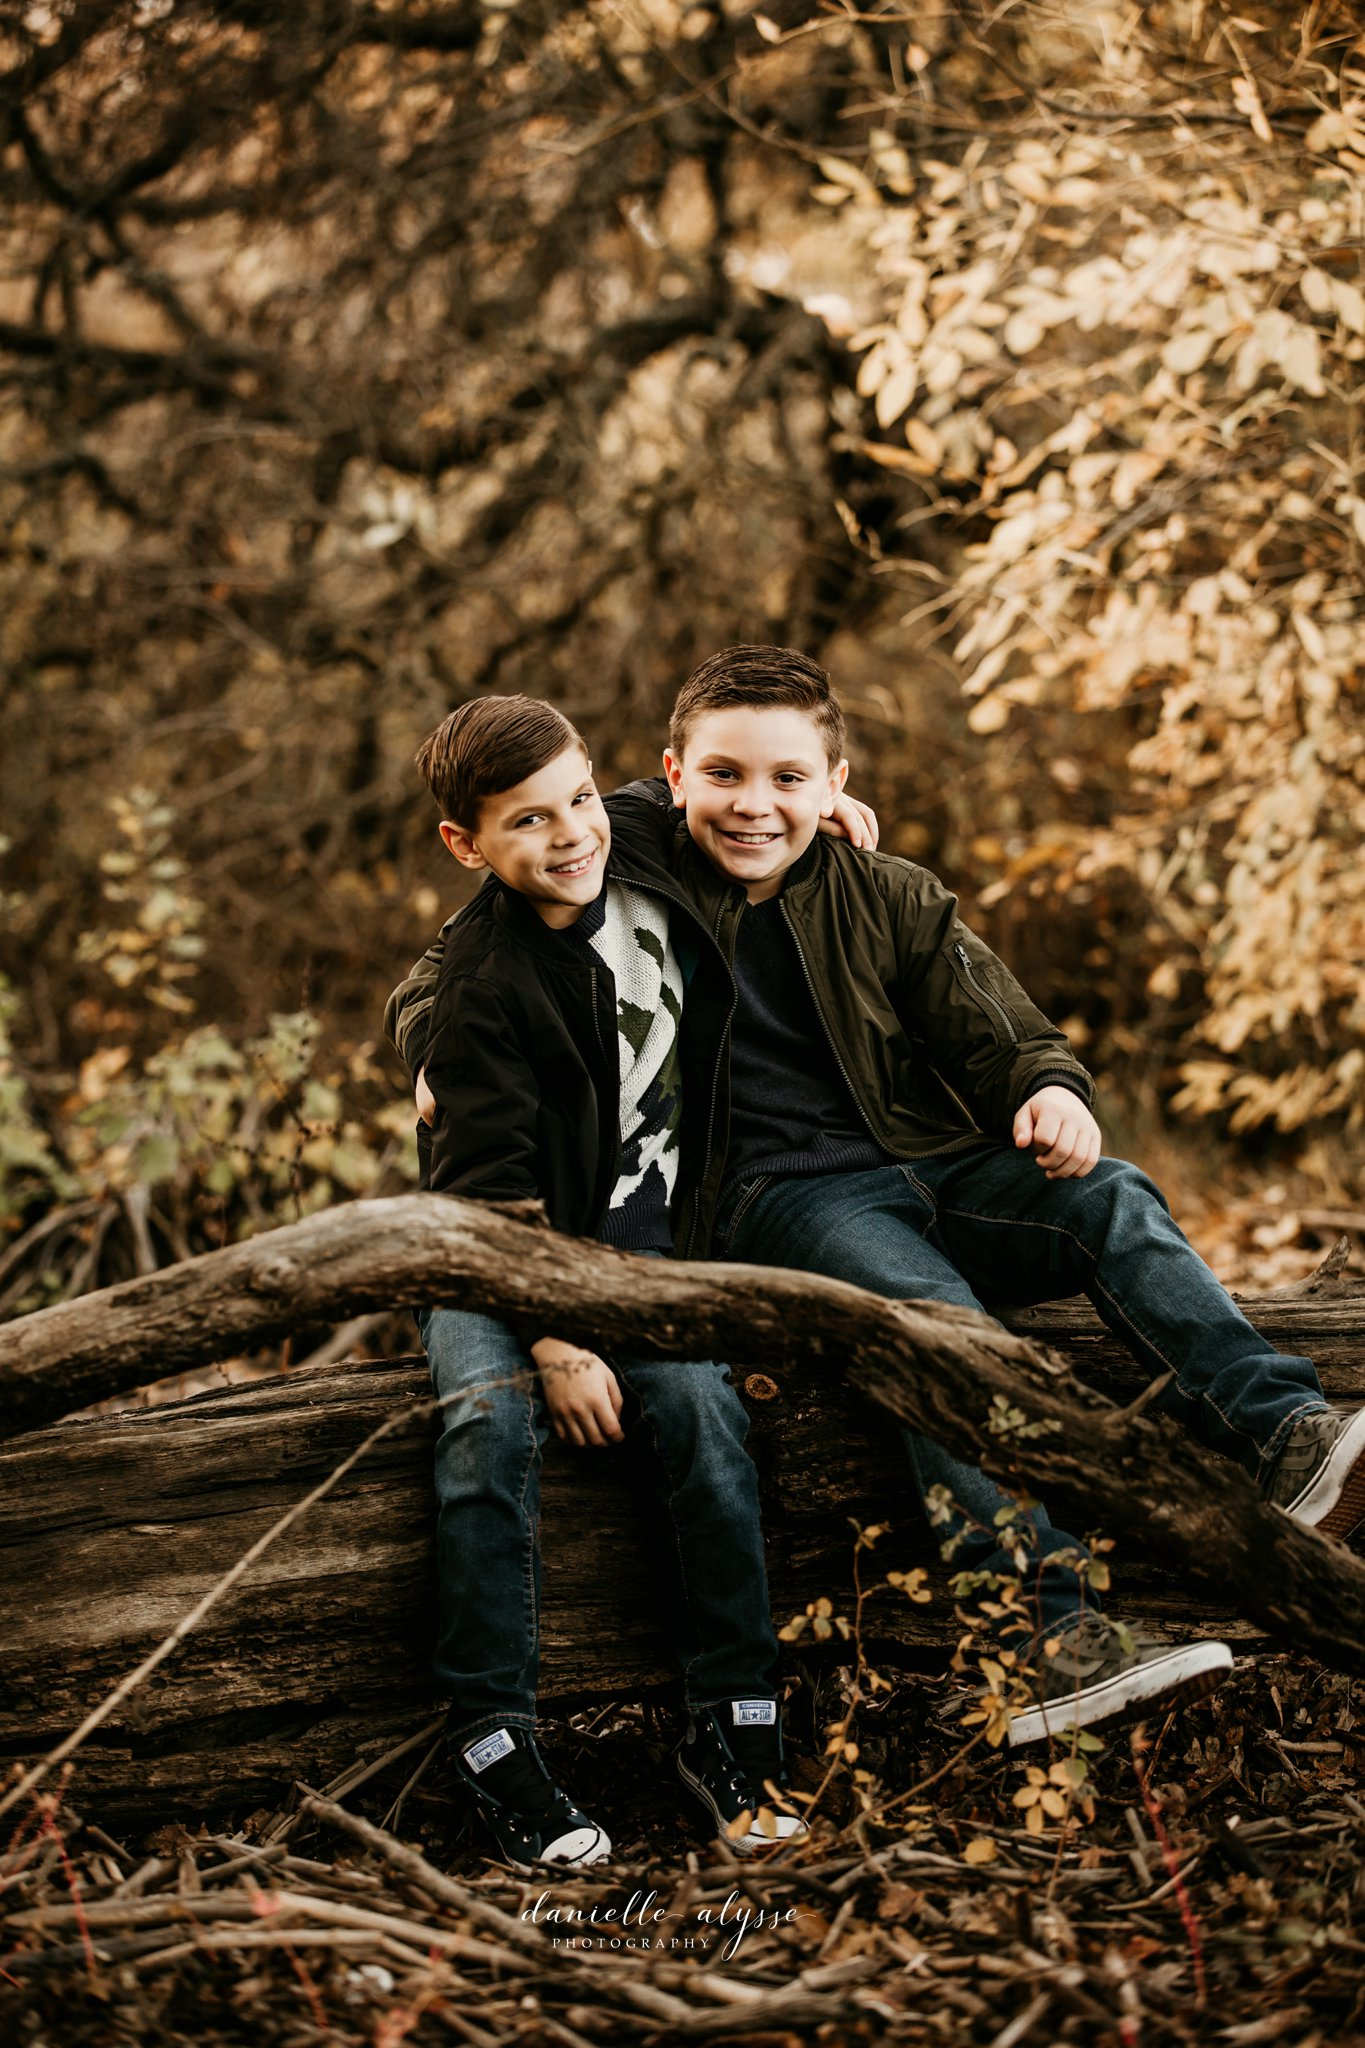 181125_fall_family_portrait_cosumnes_river_preserve_brittney_danielle_alysse_photography_17_WEB.jpg